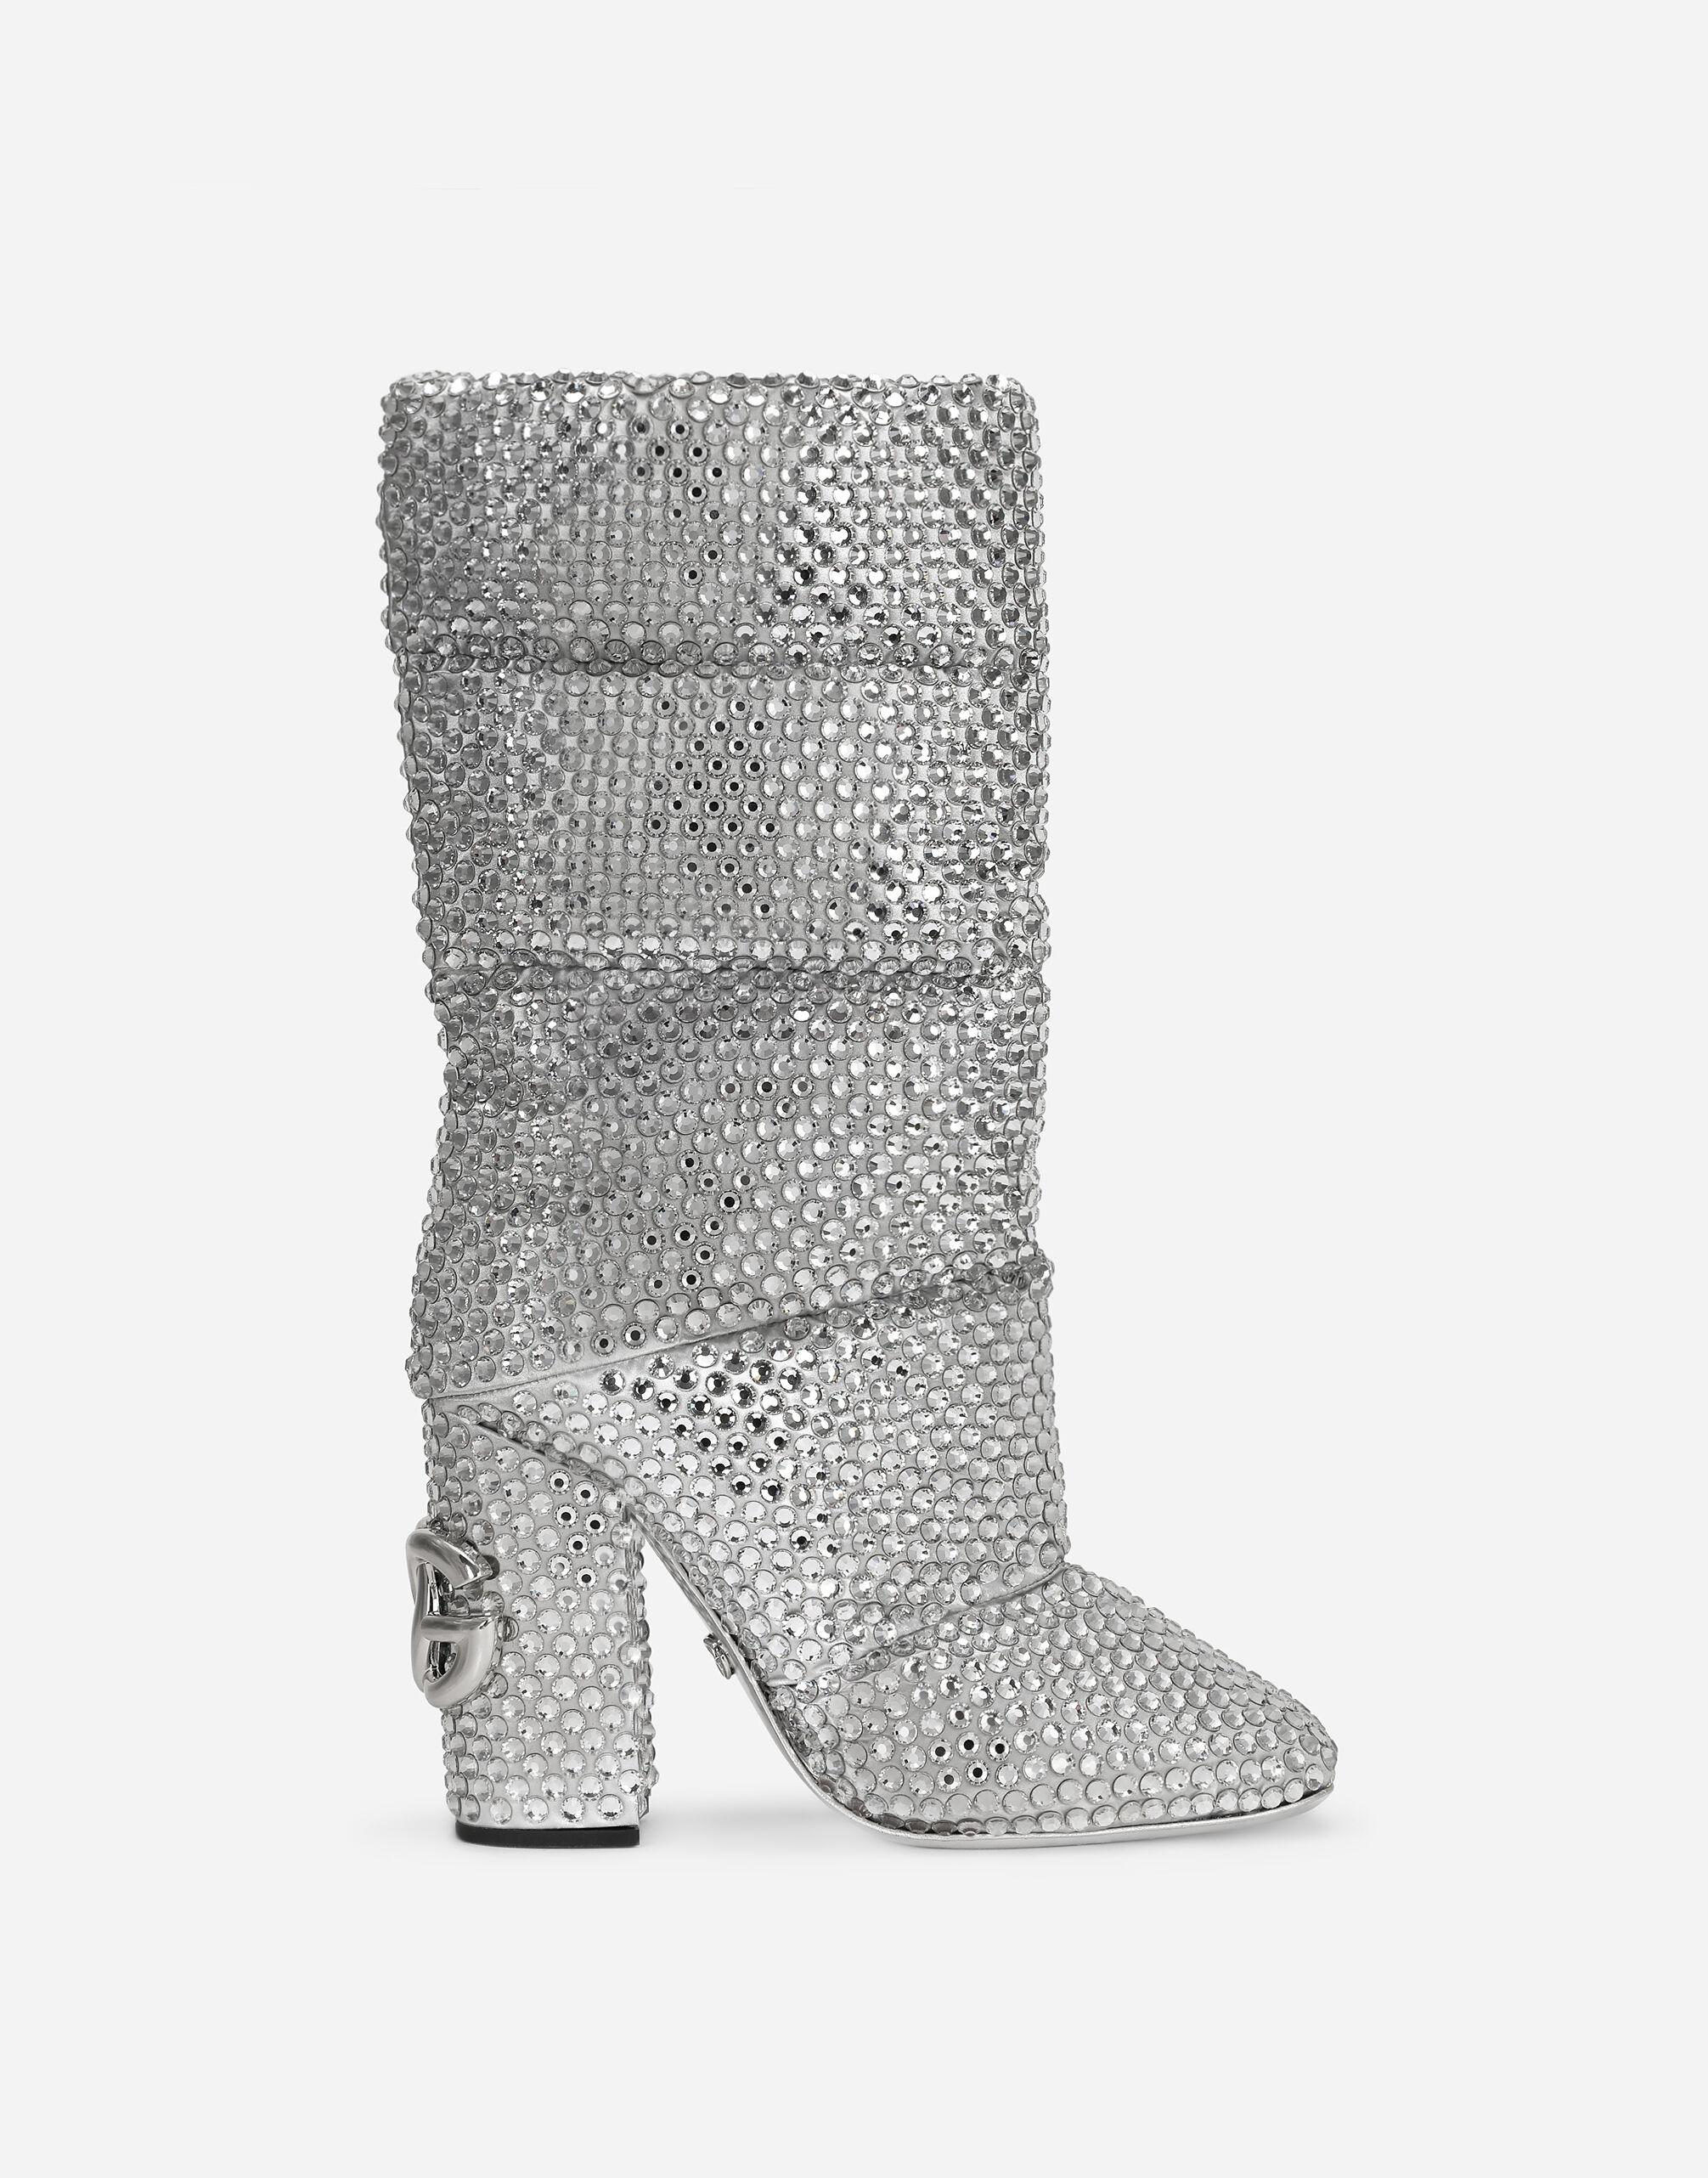 Padded nylon boots with fusible rhinestones